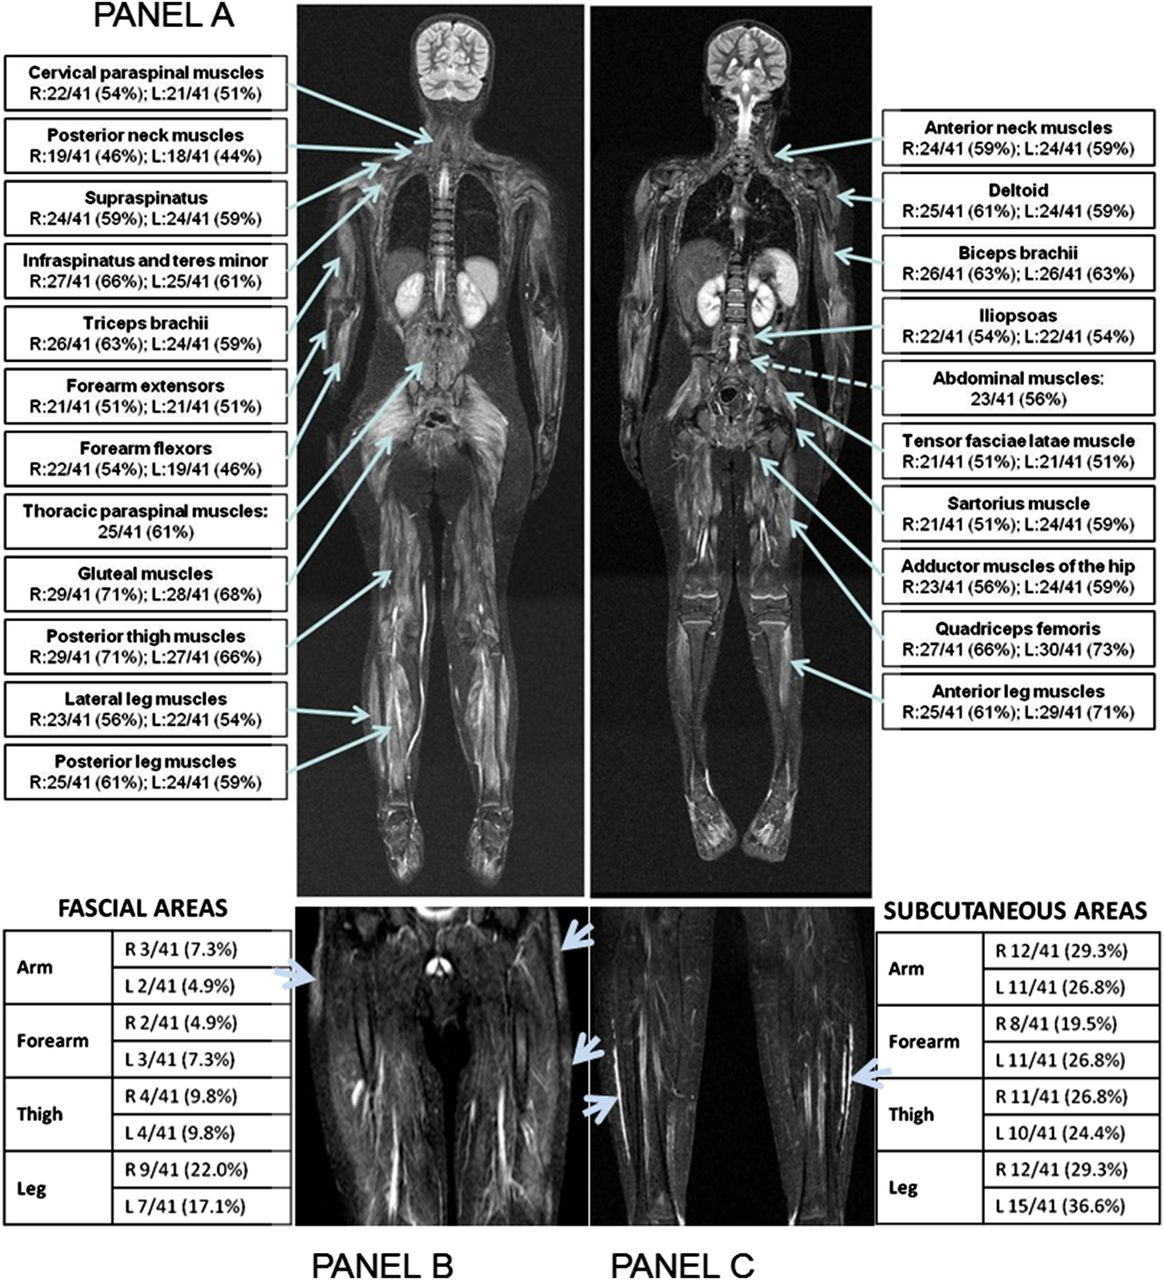 Whole Body Mri In The Assessment Of Disease Activity In Juvenile